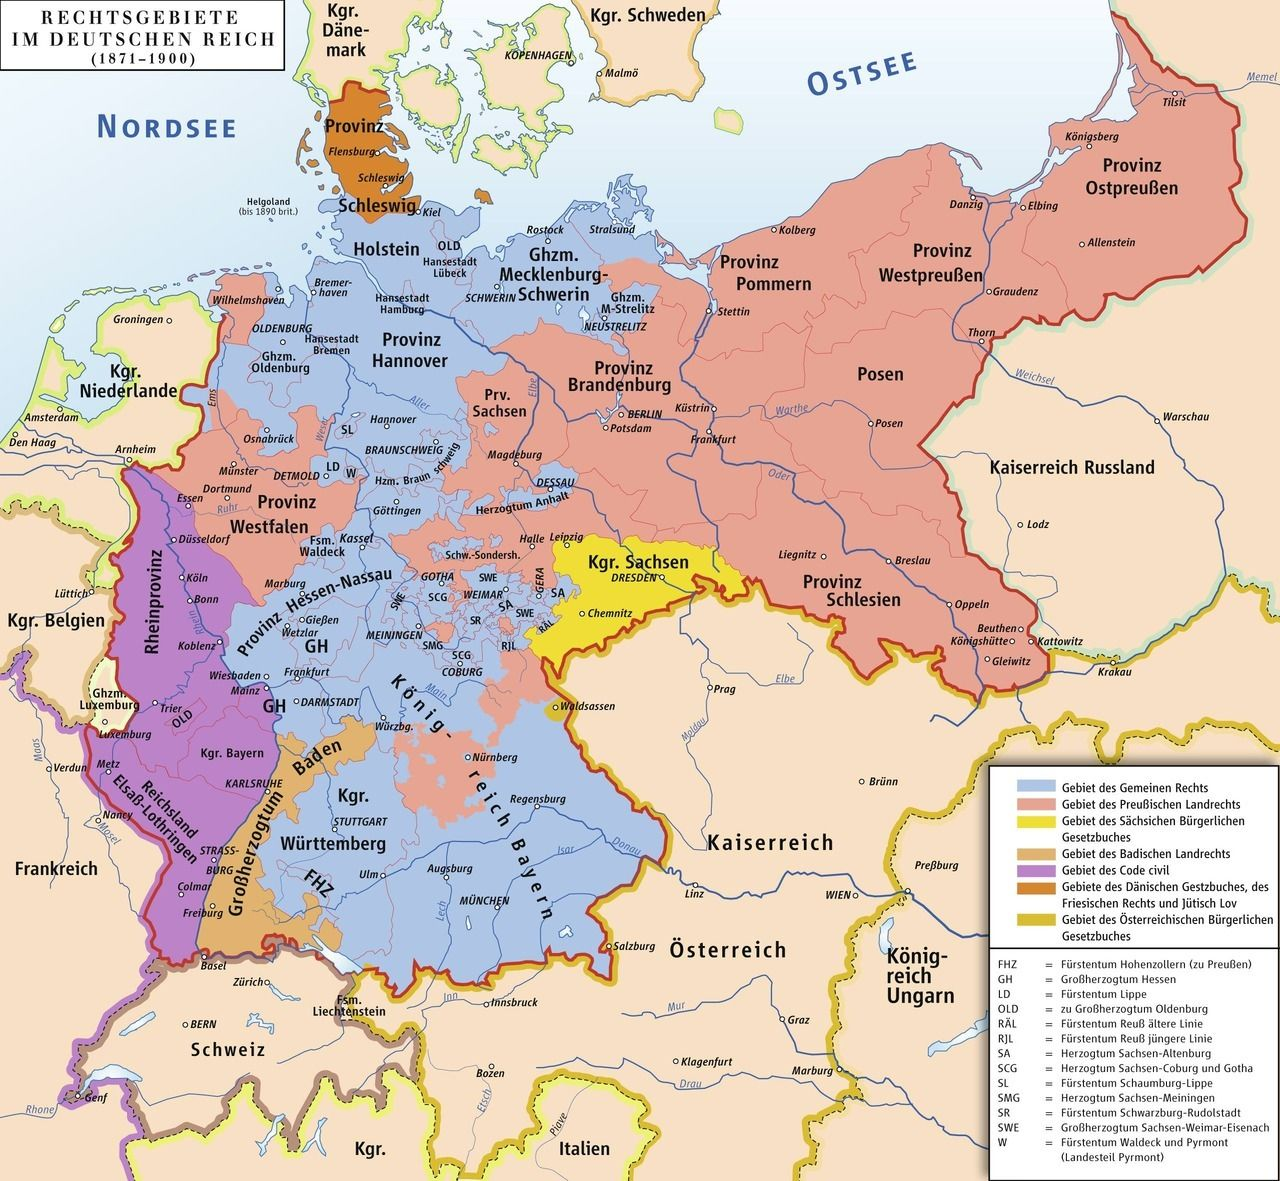 Different legal systems in the German Empire, 1871-1900. | Maps ...